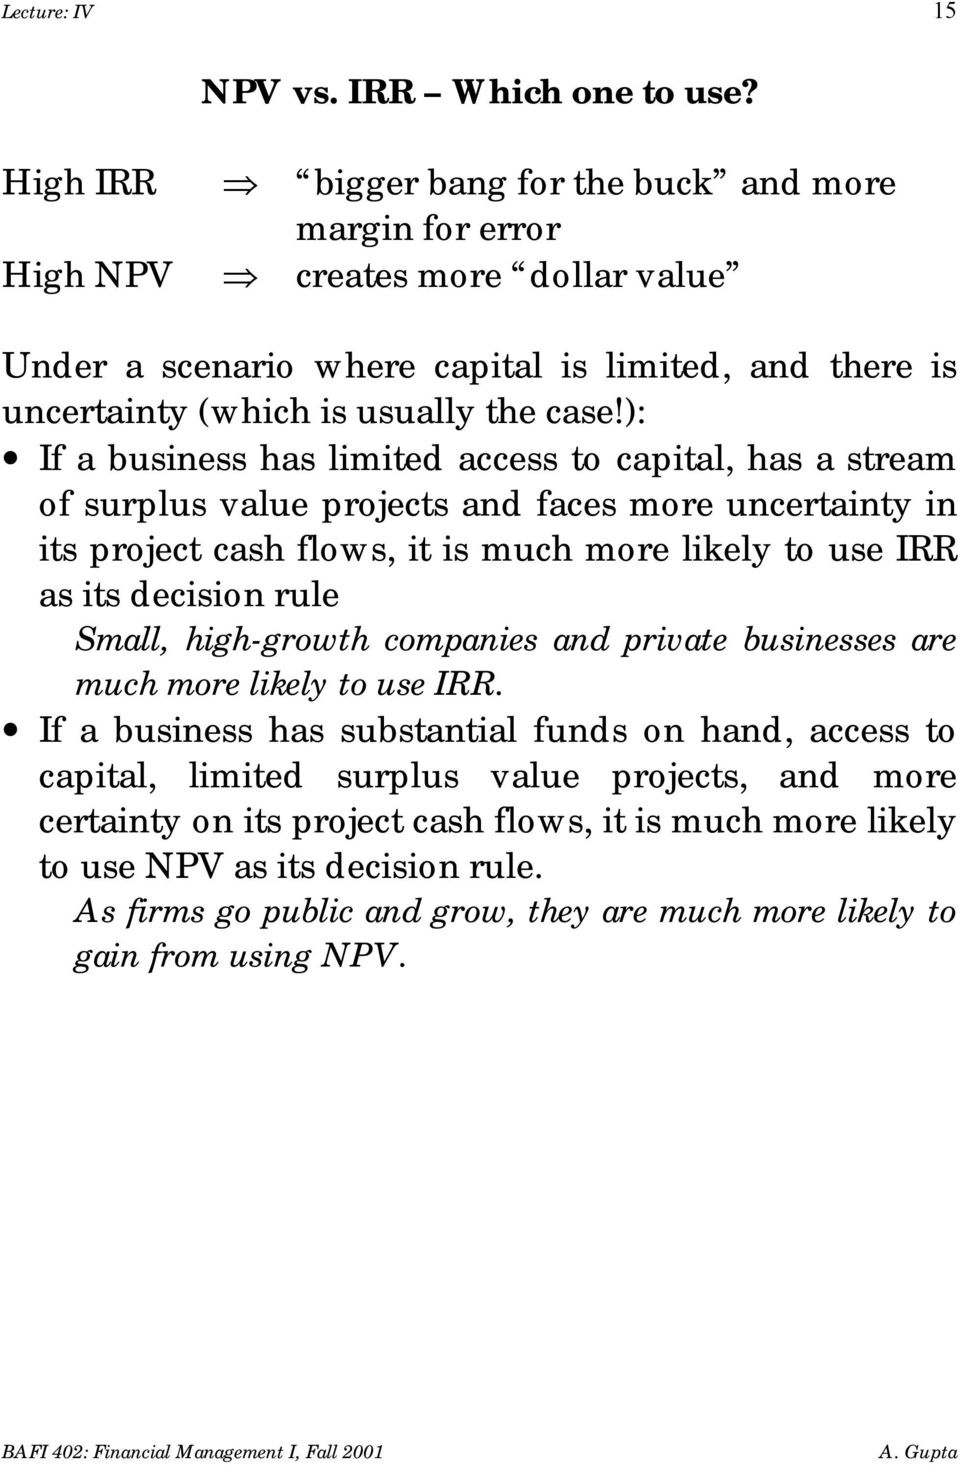 ): If a business has limited access to capital, has a stream of surplus value projects and faces more uncertainty in its project cash flows, it is much more likely to use IRR as its decision rule